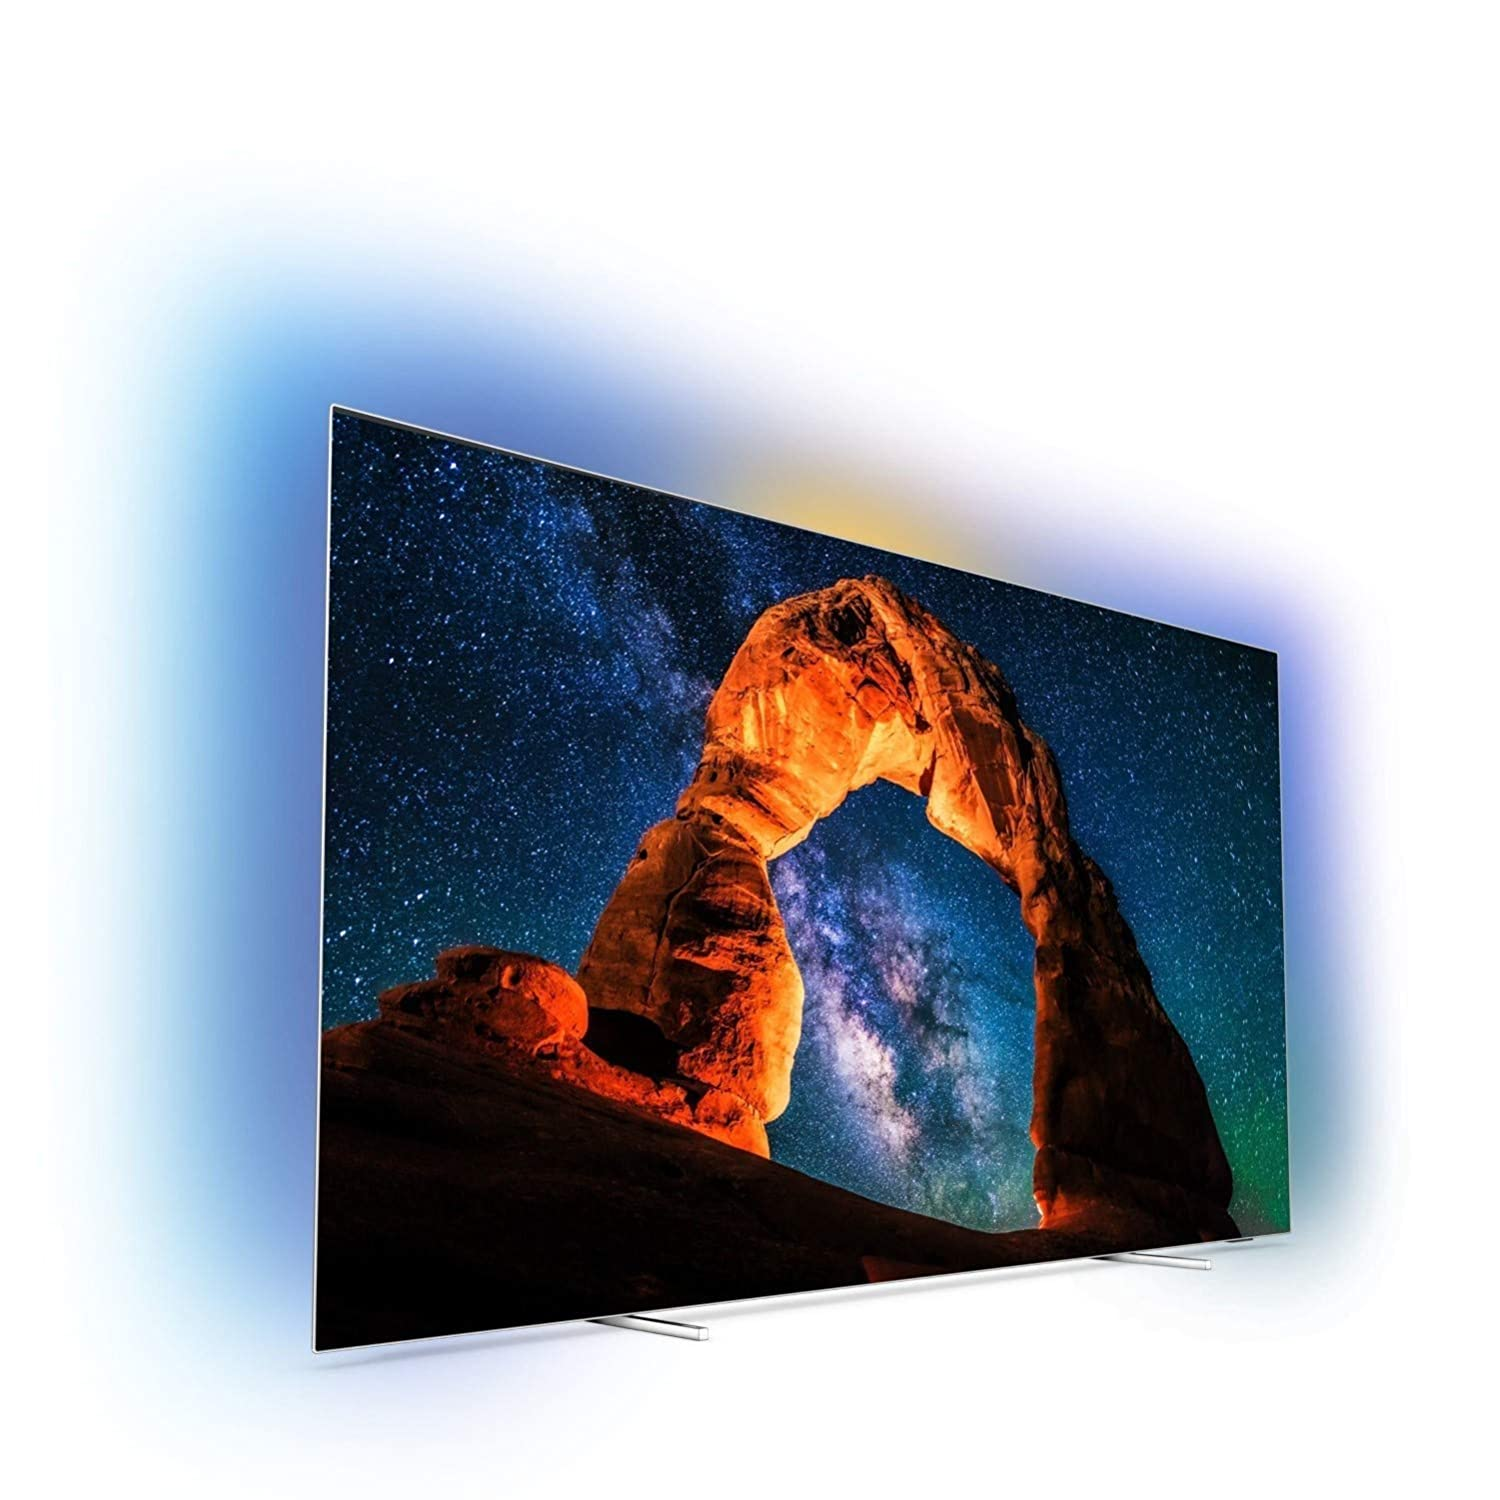 Philips 803 Smart TV OLED 4K UHD da 65''